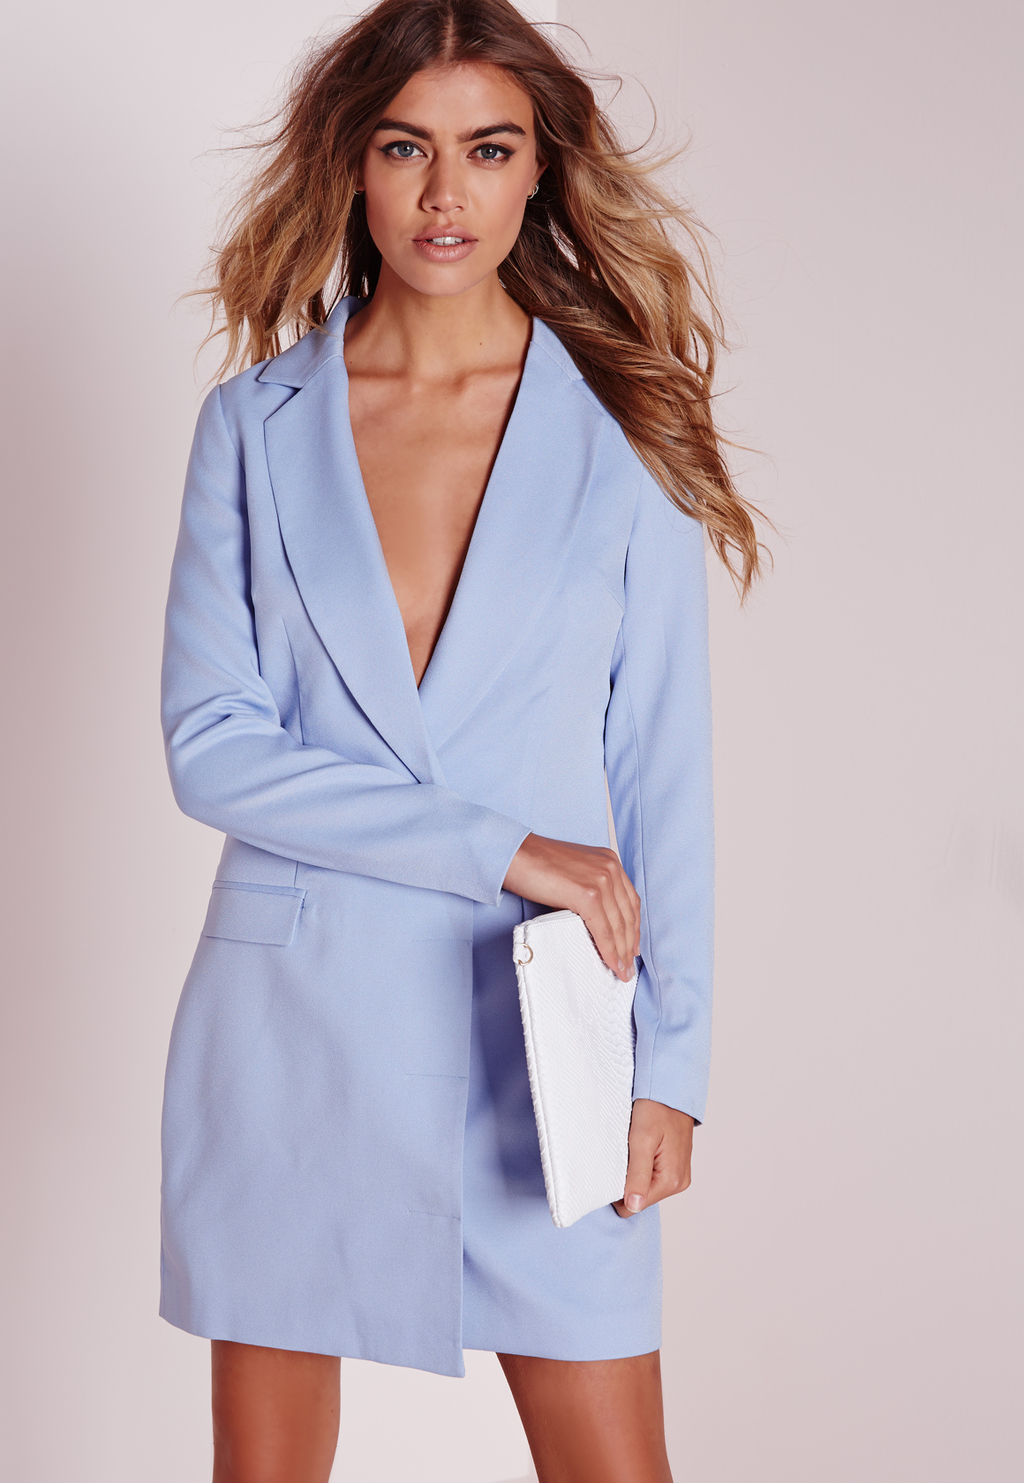 Long Sleeve Blazer Dress Powder Blue, Blue - style: shirt; length: mid thigh; neckline: low v-neck; pattern: plain; predominant colour: pale blue; occasions: evening, creative work; fit: body skimming; fibres: polyester/polyamide - 100%; hip detail: subtle/flattering hip detail; sleeve length: long sleeve; sleeve style: standard; texture group: crepes; pattern type: fabric; season: s/s 2016; wardrobe: highlight